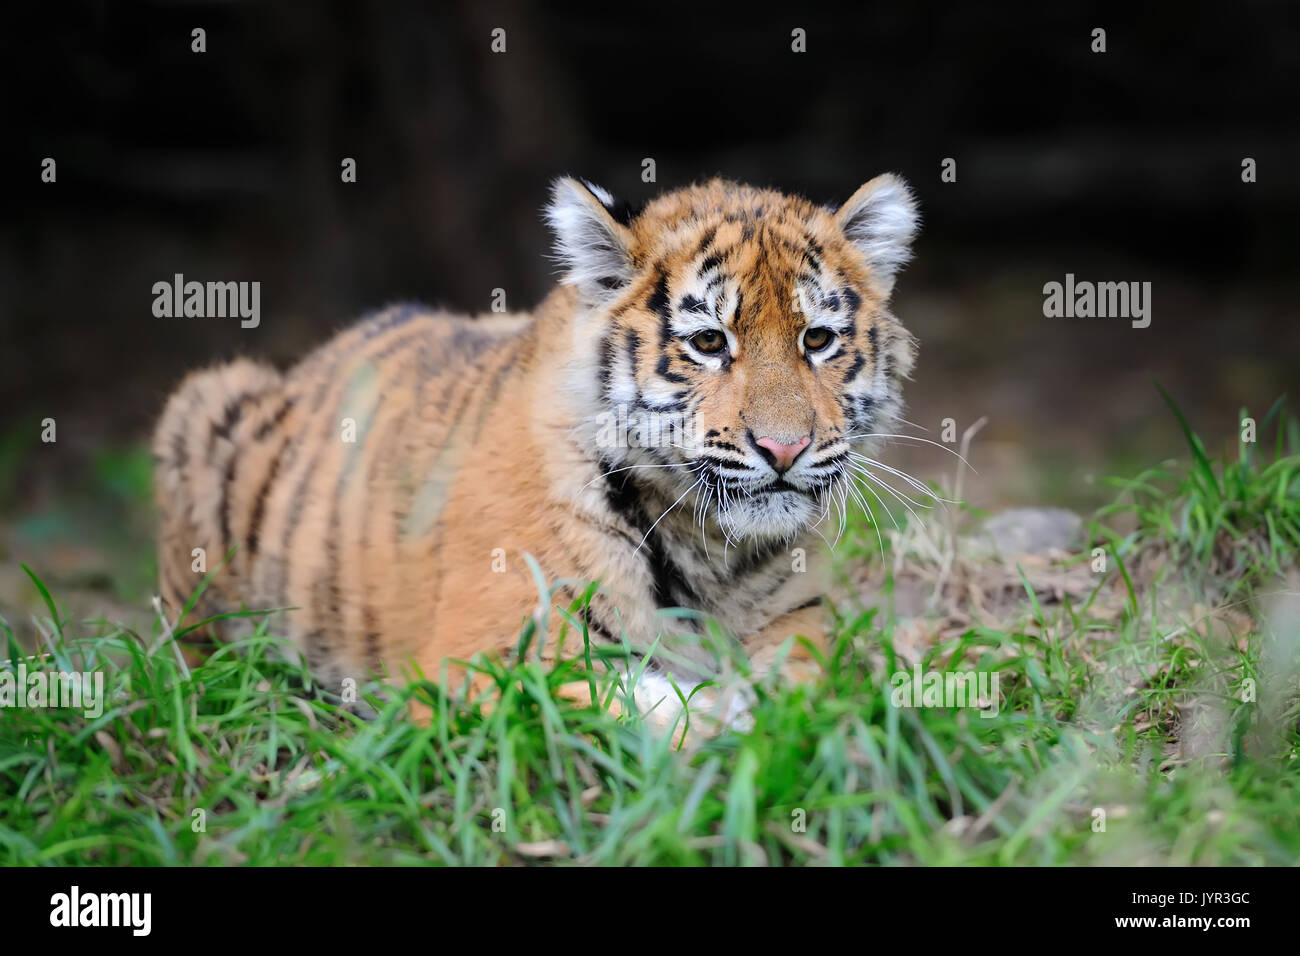 Baby Bengal Tiger Cub Portrait Stock Photos & Baby Bengal ... Cute Siberian Tiger Cubs